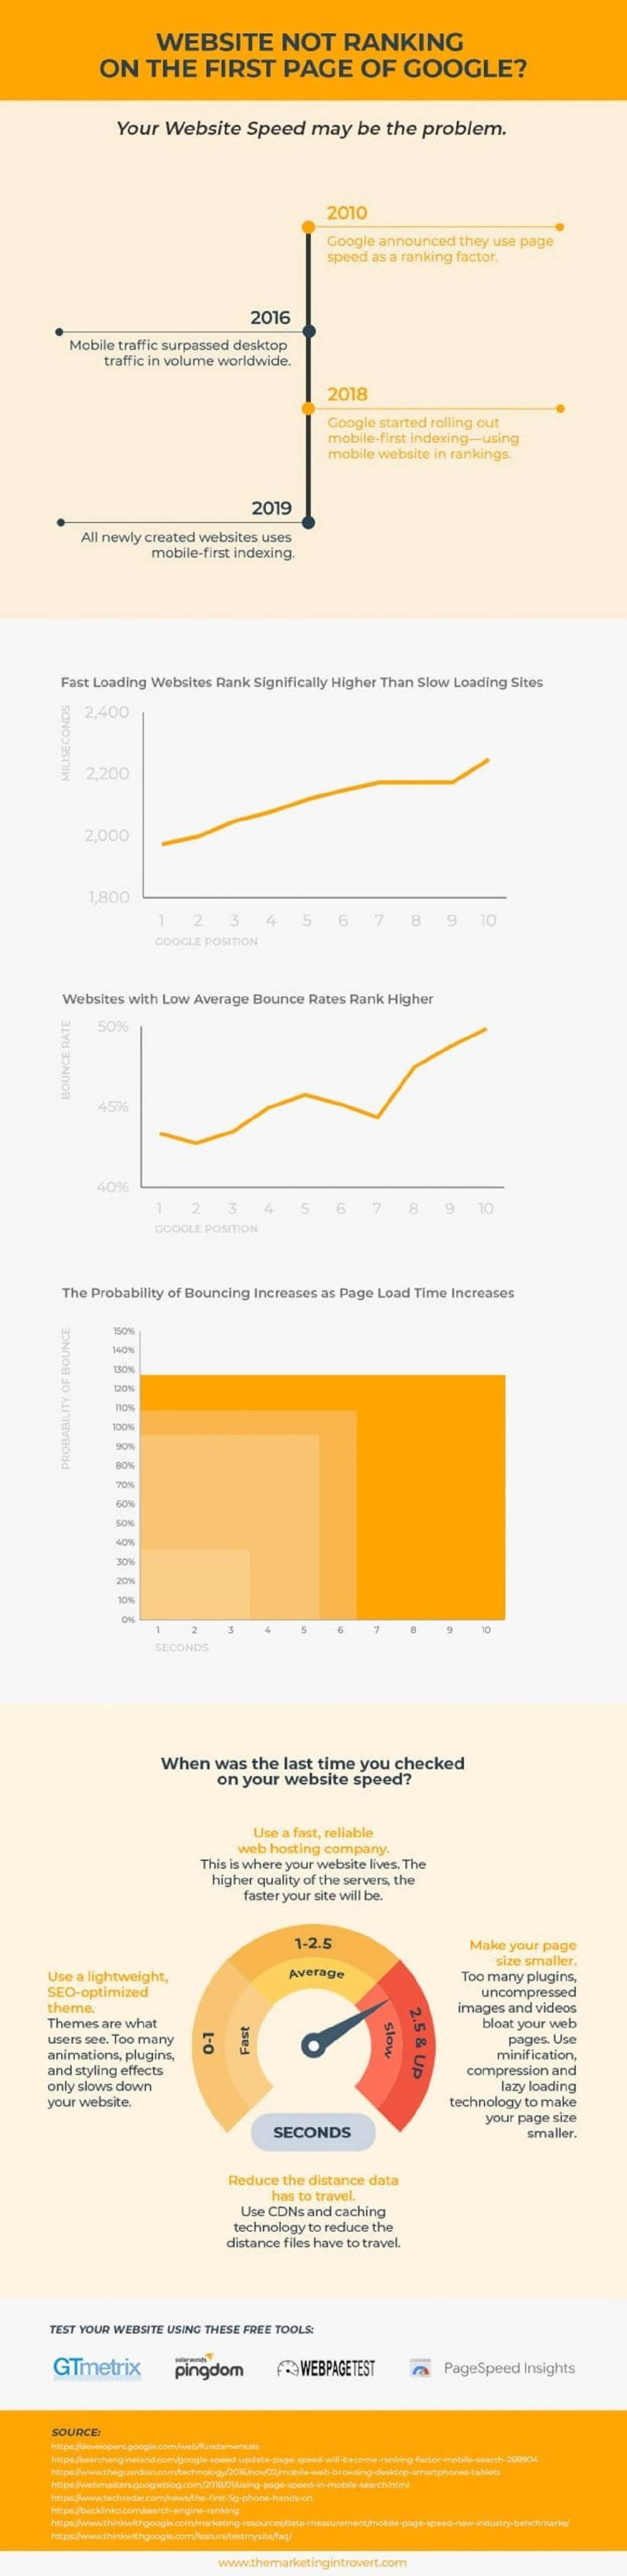 the-honest-truth-about-website-rankings-and-why-your-website-isnt-ranking-on-google-infographic